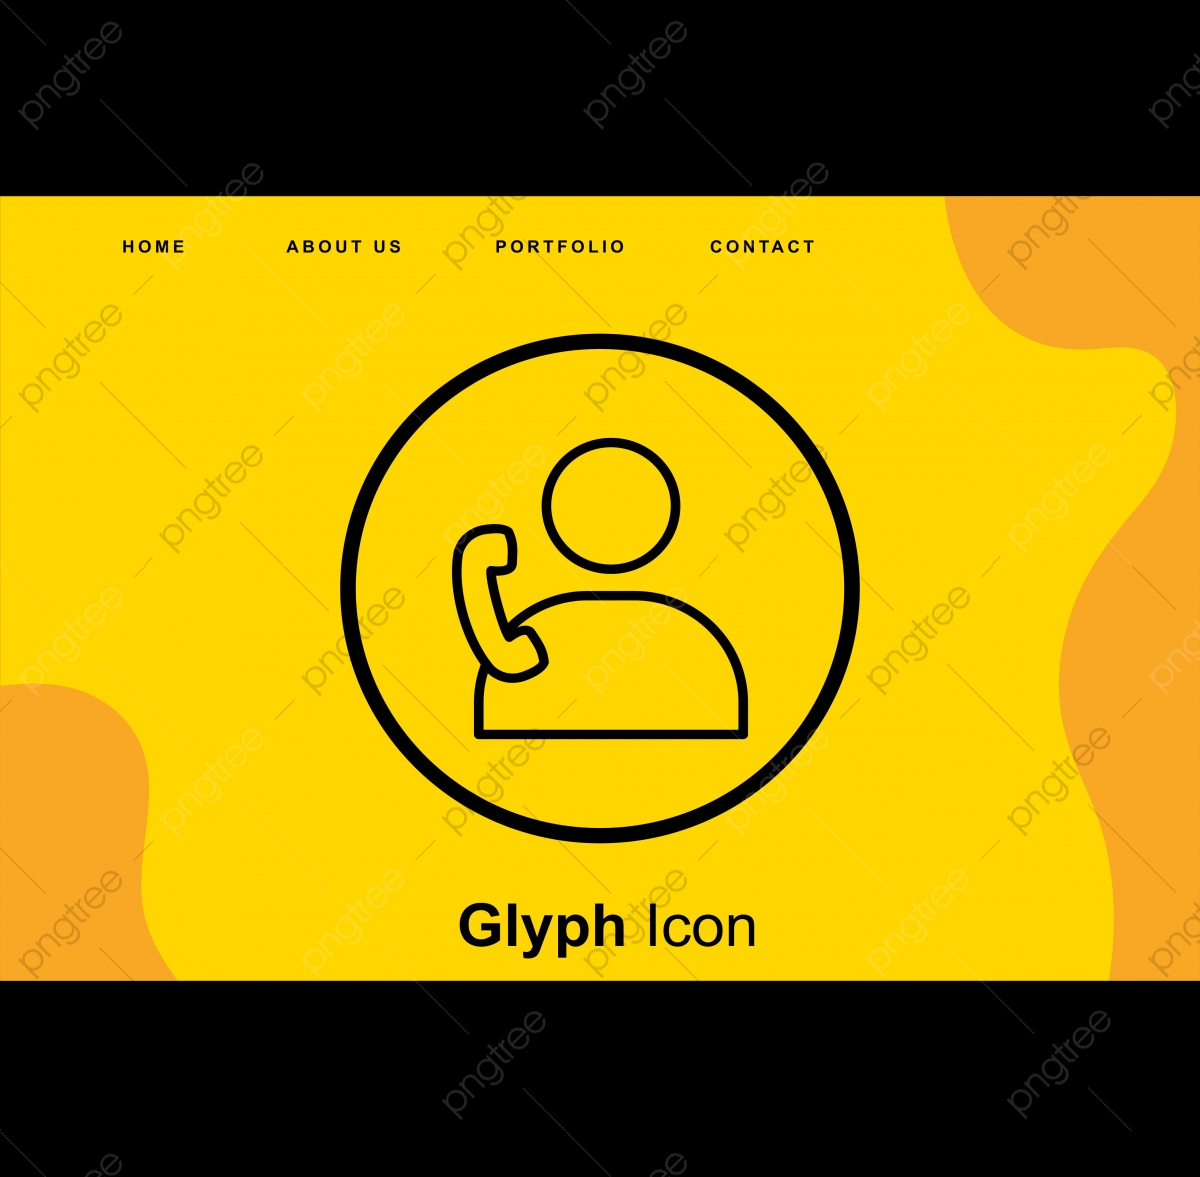 Call Icon For Your Design Websites And Projects Call Icons Call Phone Png And Vector With Transparent Background For Free Download Available in png and svg formats. pngtree